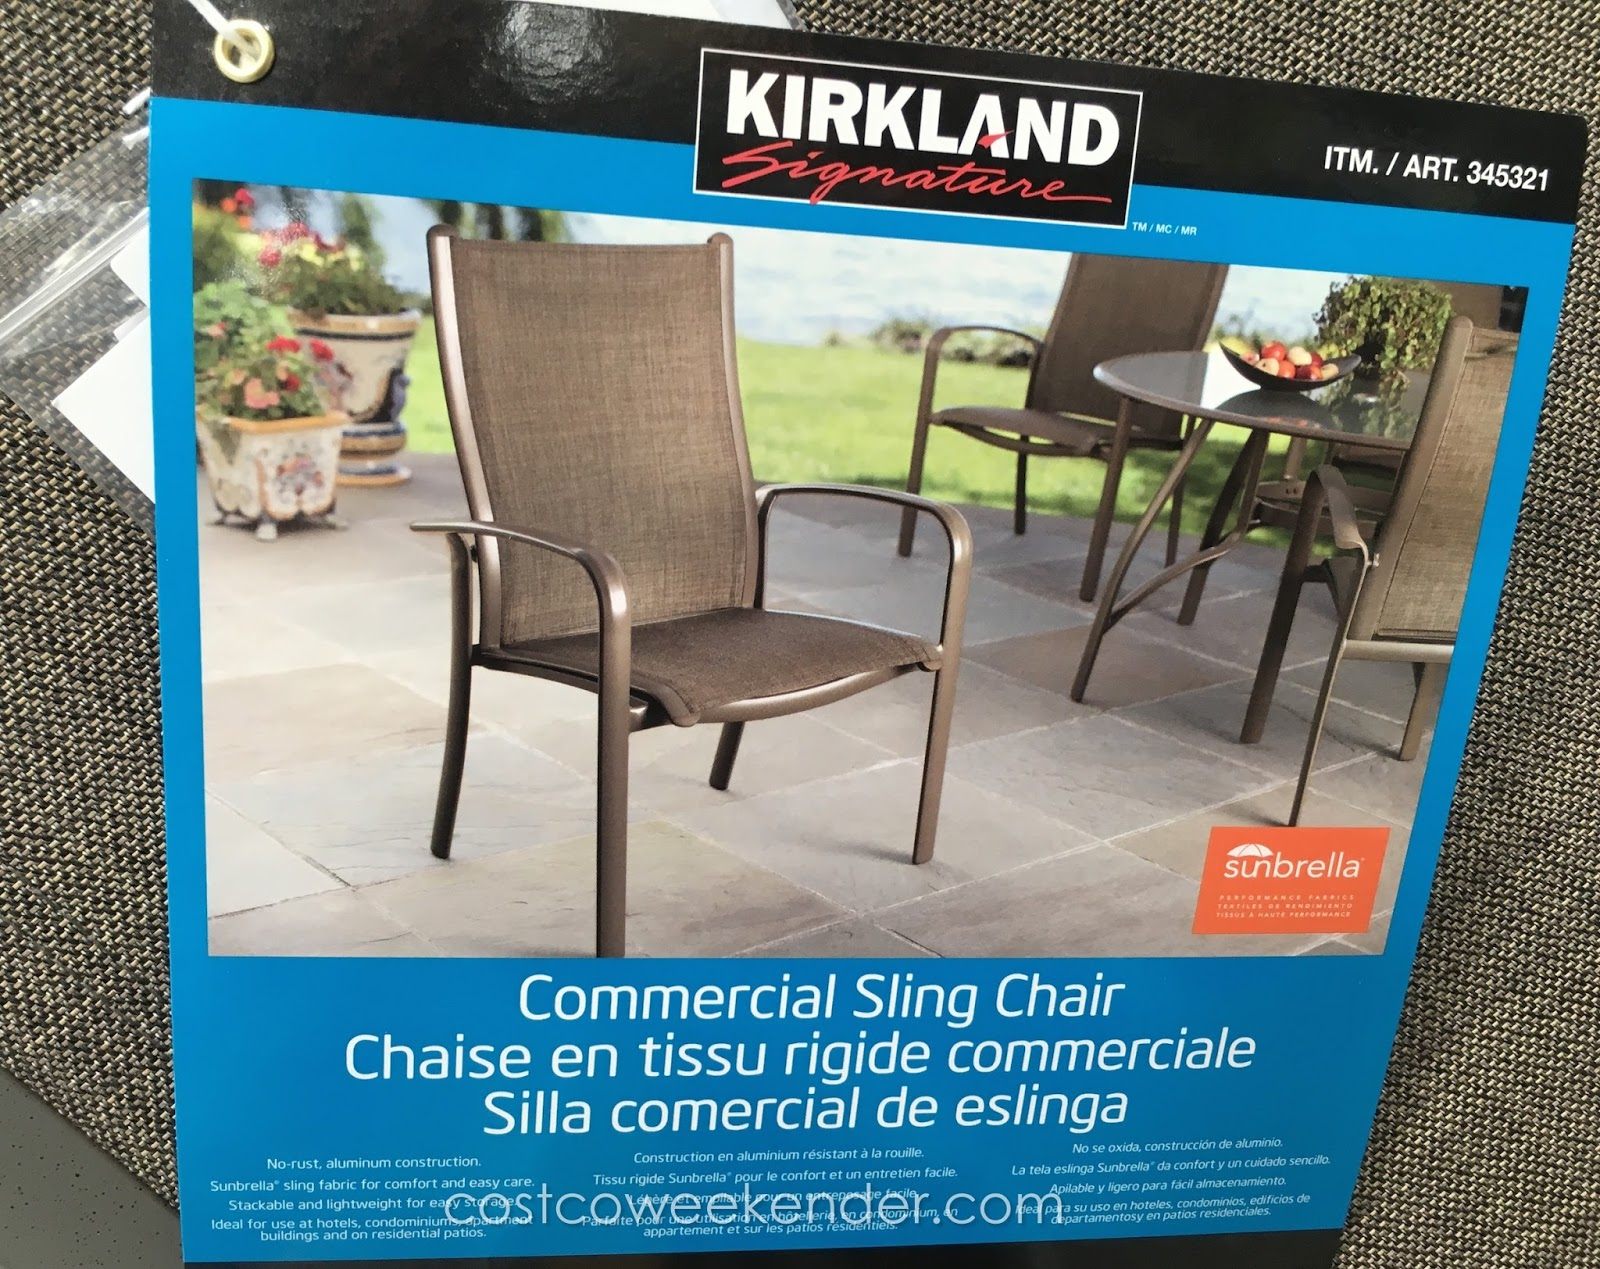 Kirkland mercial Sling Chair